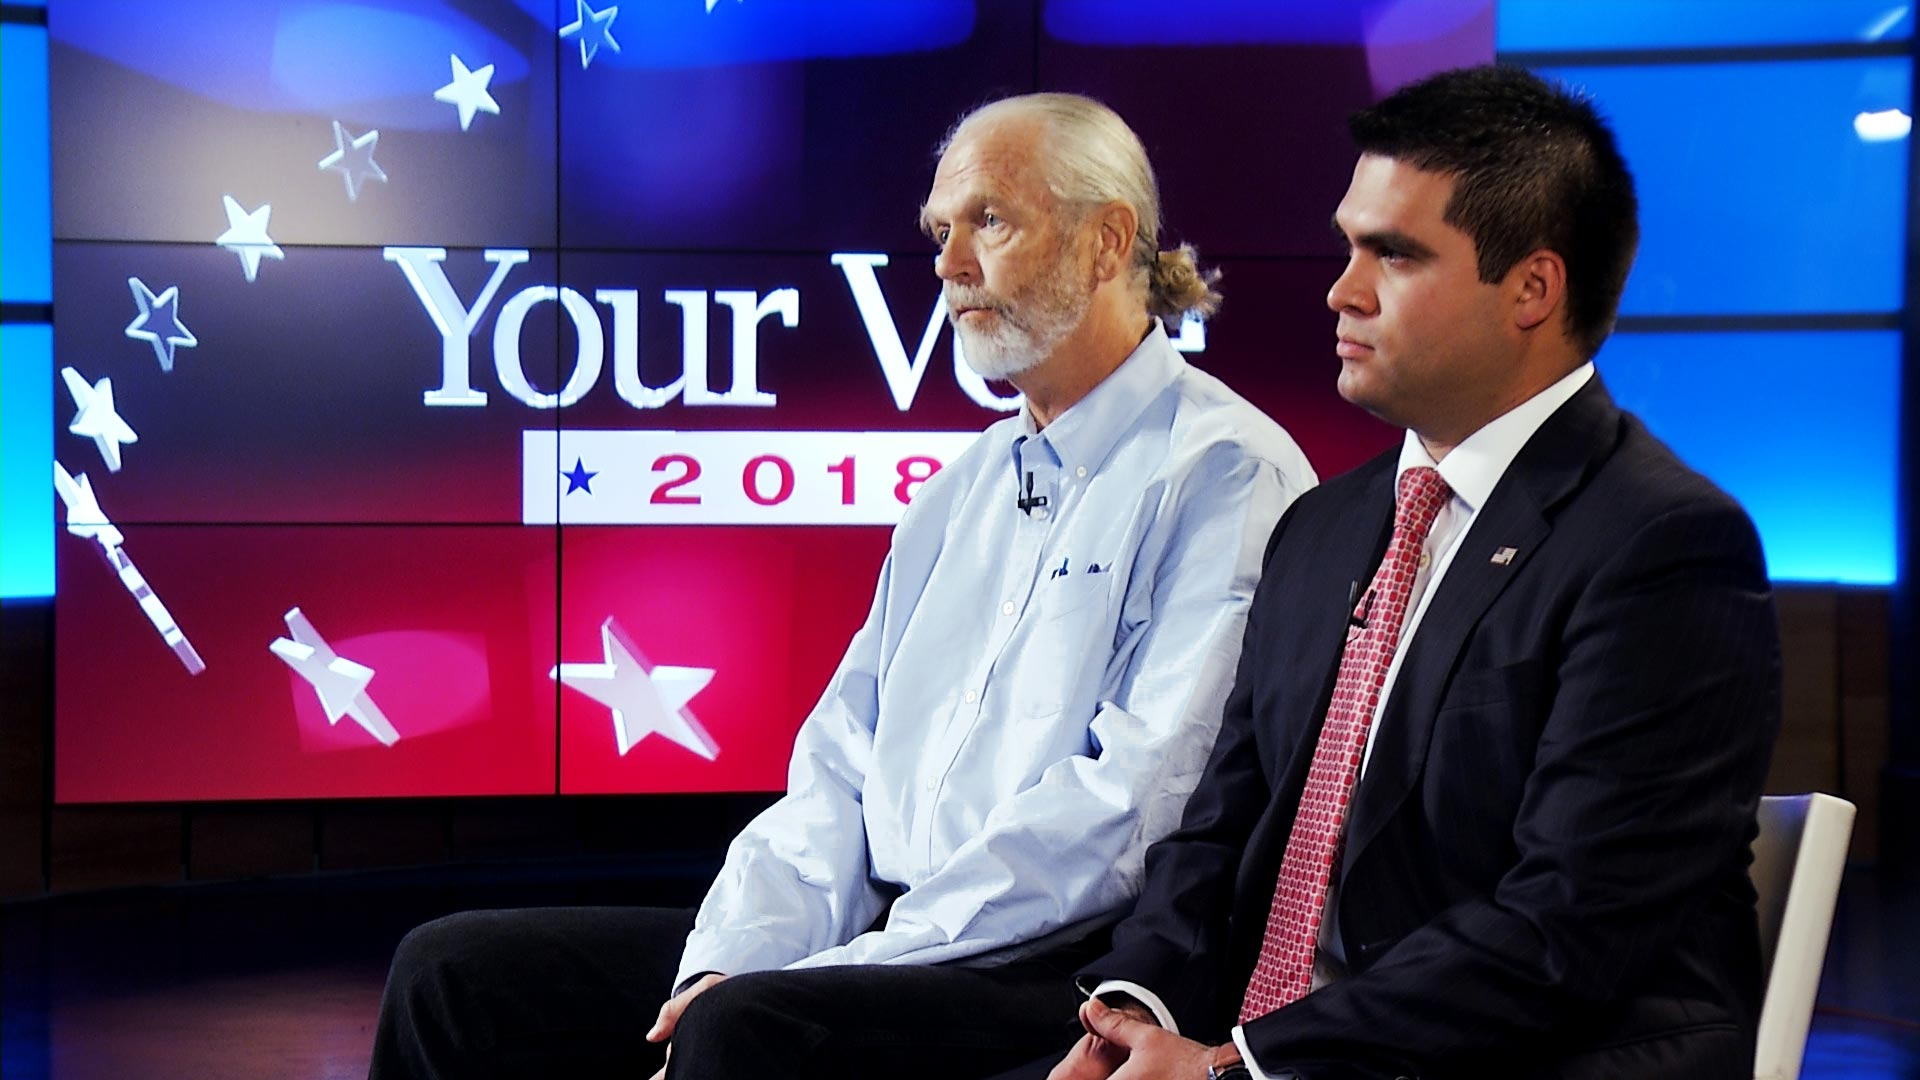 Democrat Gary Jones (left) and Republican John Dalton (right) participate in an interview at Arizona Public Media about the 2018 midterm election results.